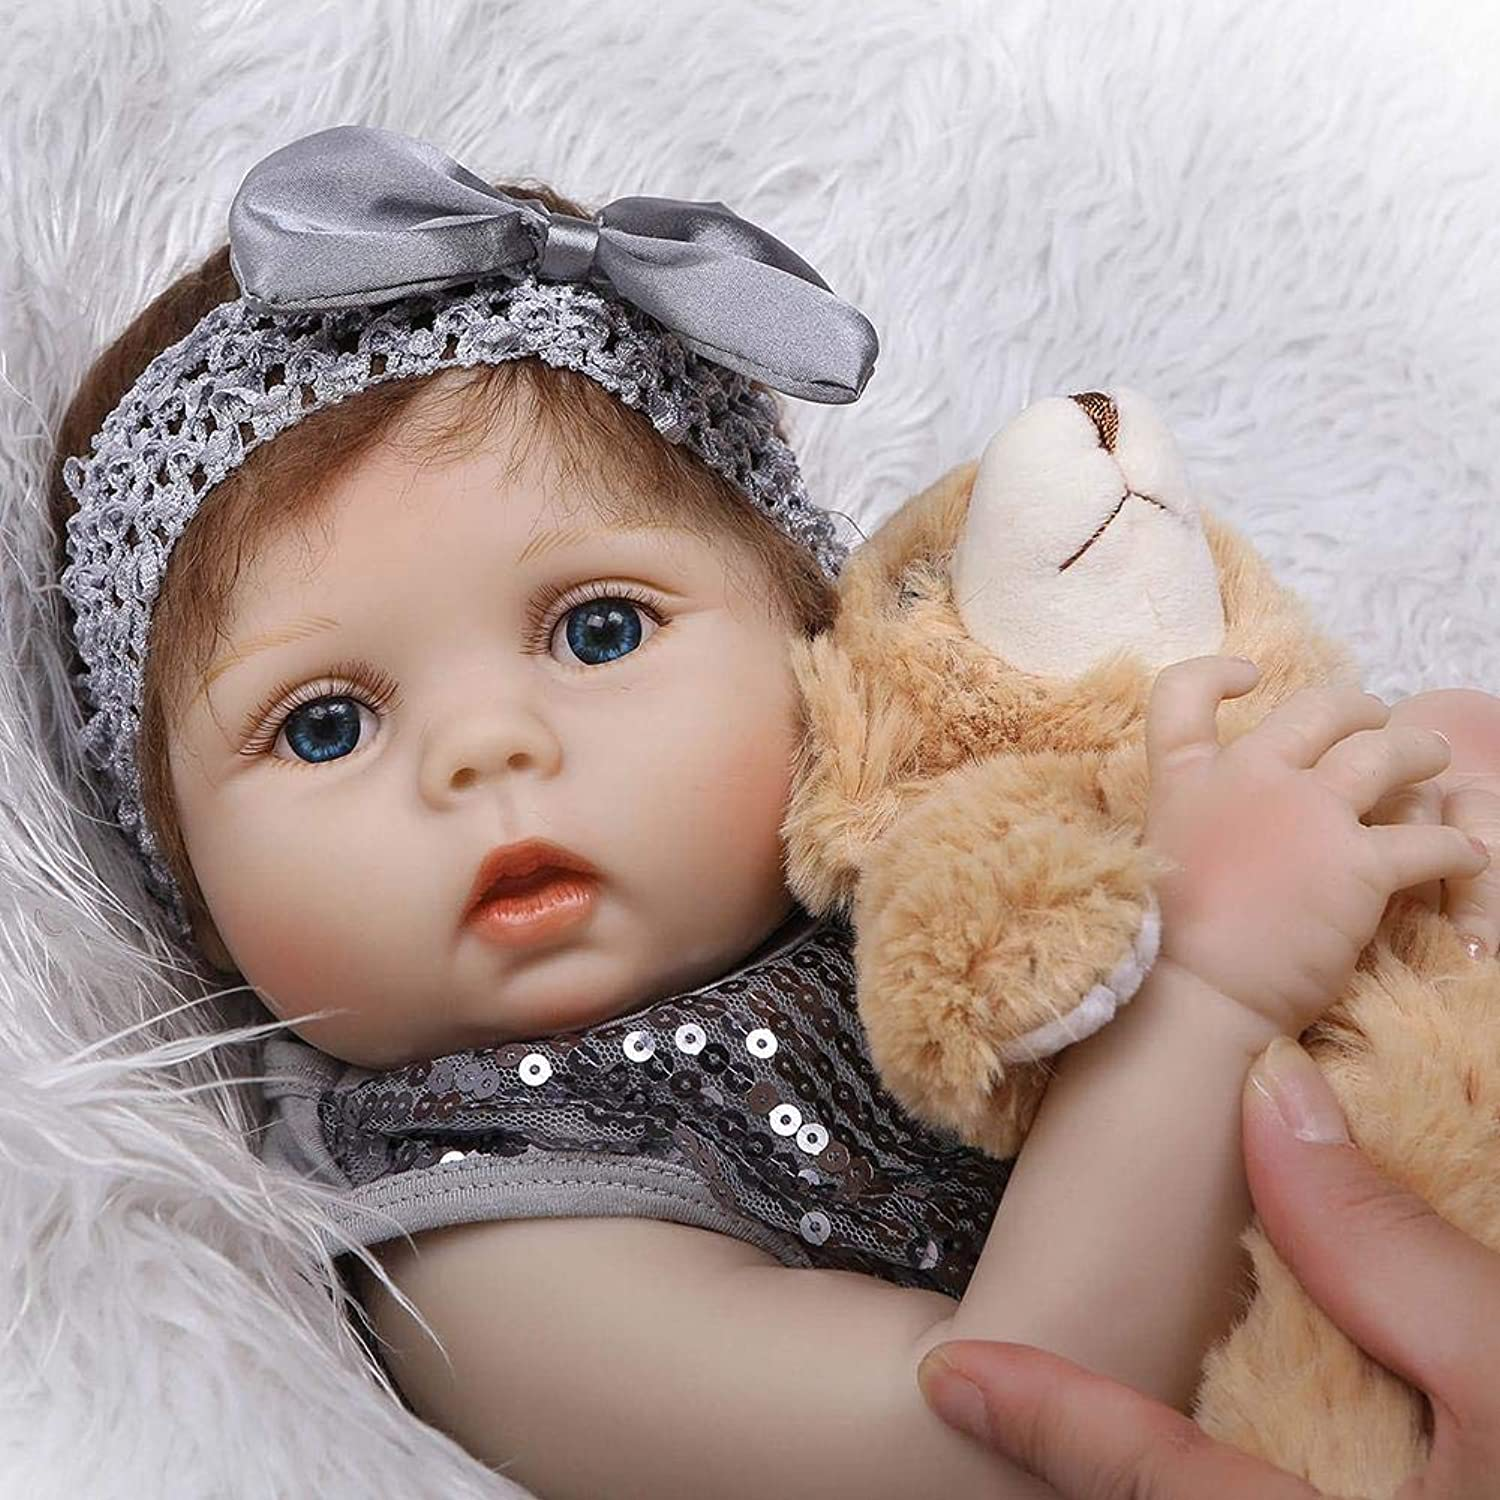 Heresell Lifelike Doll 22  Realistic Reborn Baby Dolls Look Real Girl Soft Silicone Vinyl Reborn Toddler Baby Doll Realistic Real Lifelike Looking Newborn Dolls Baby